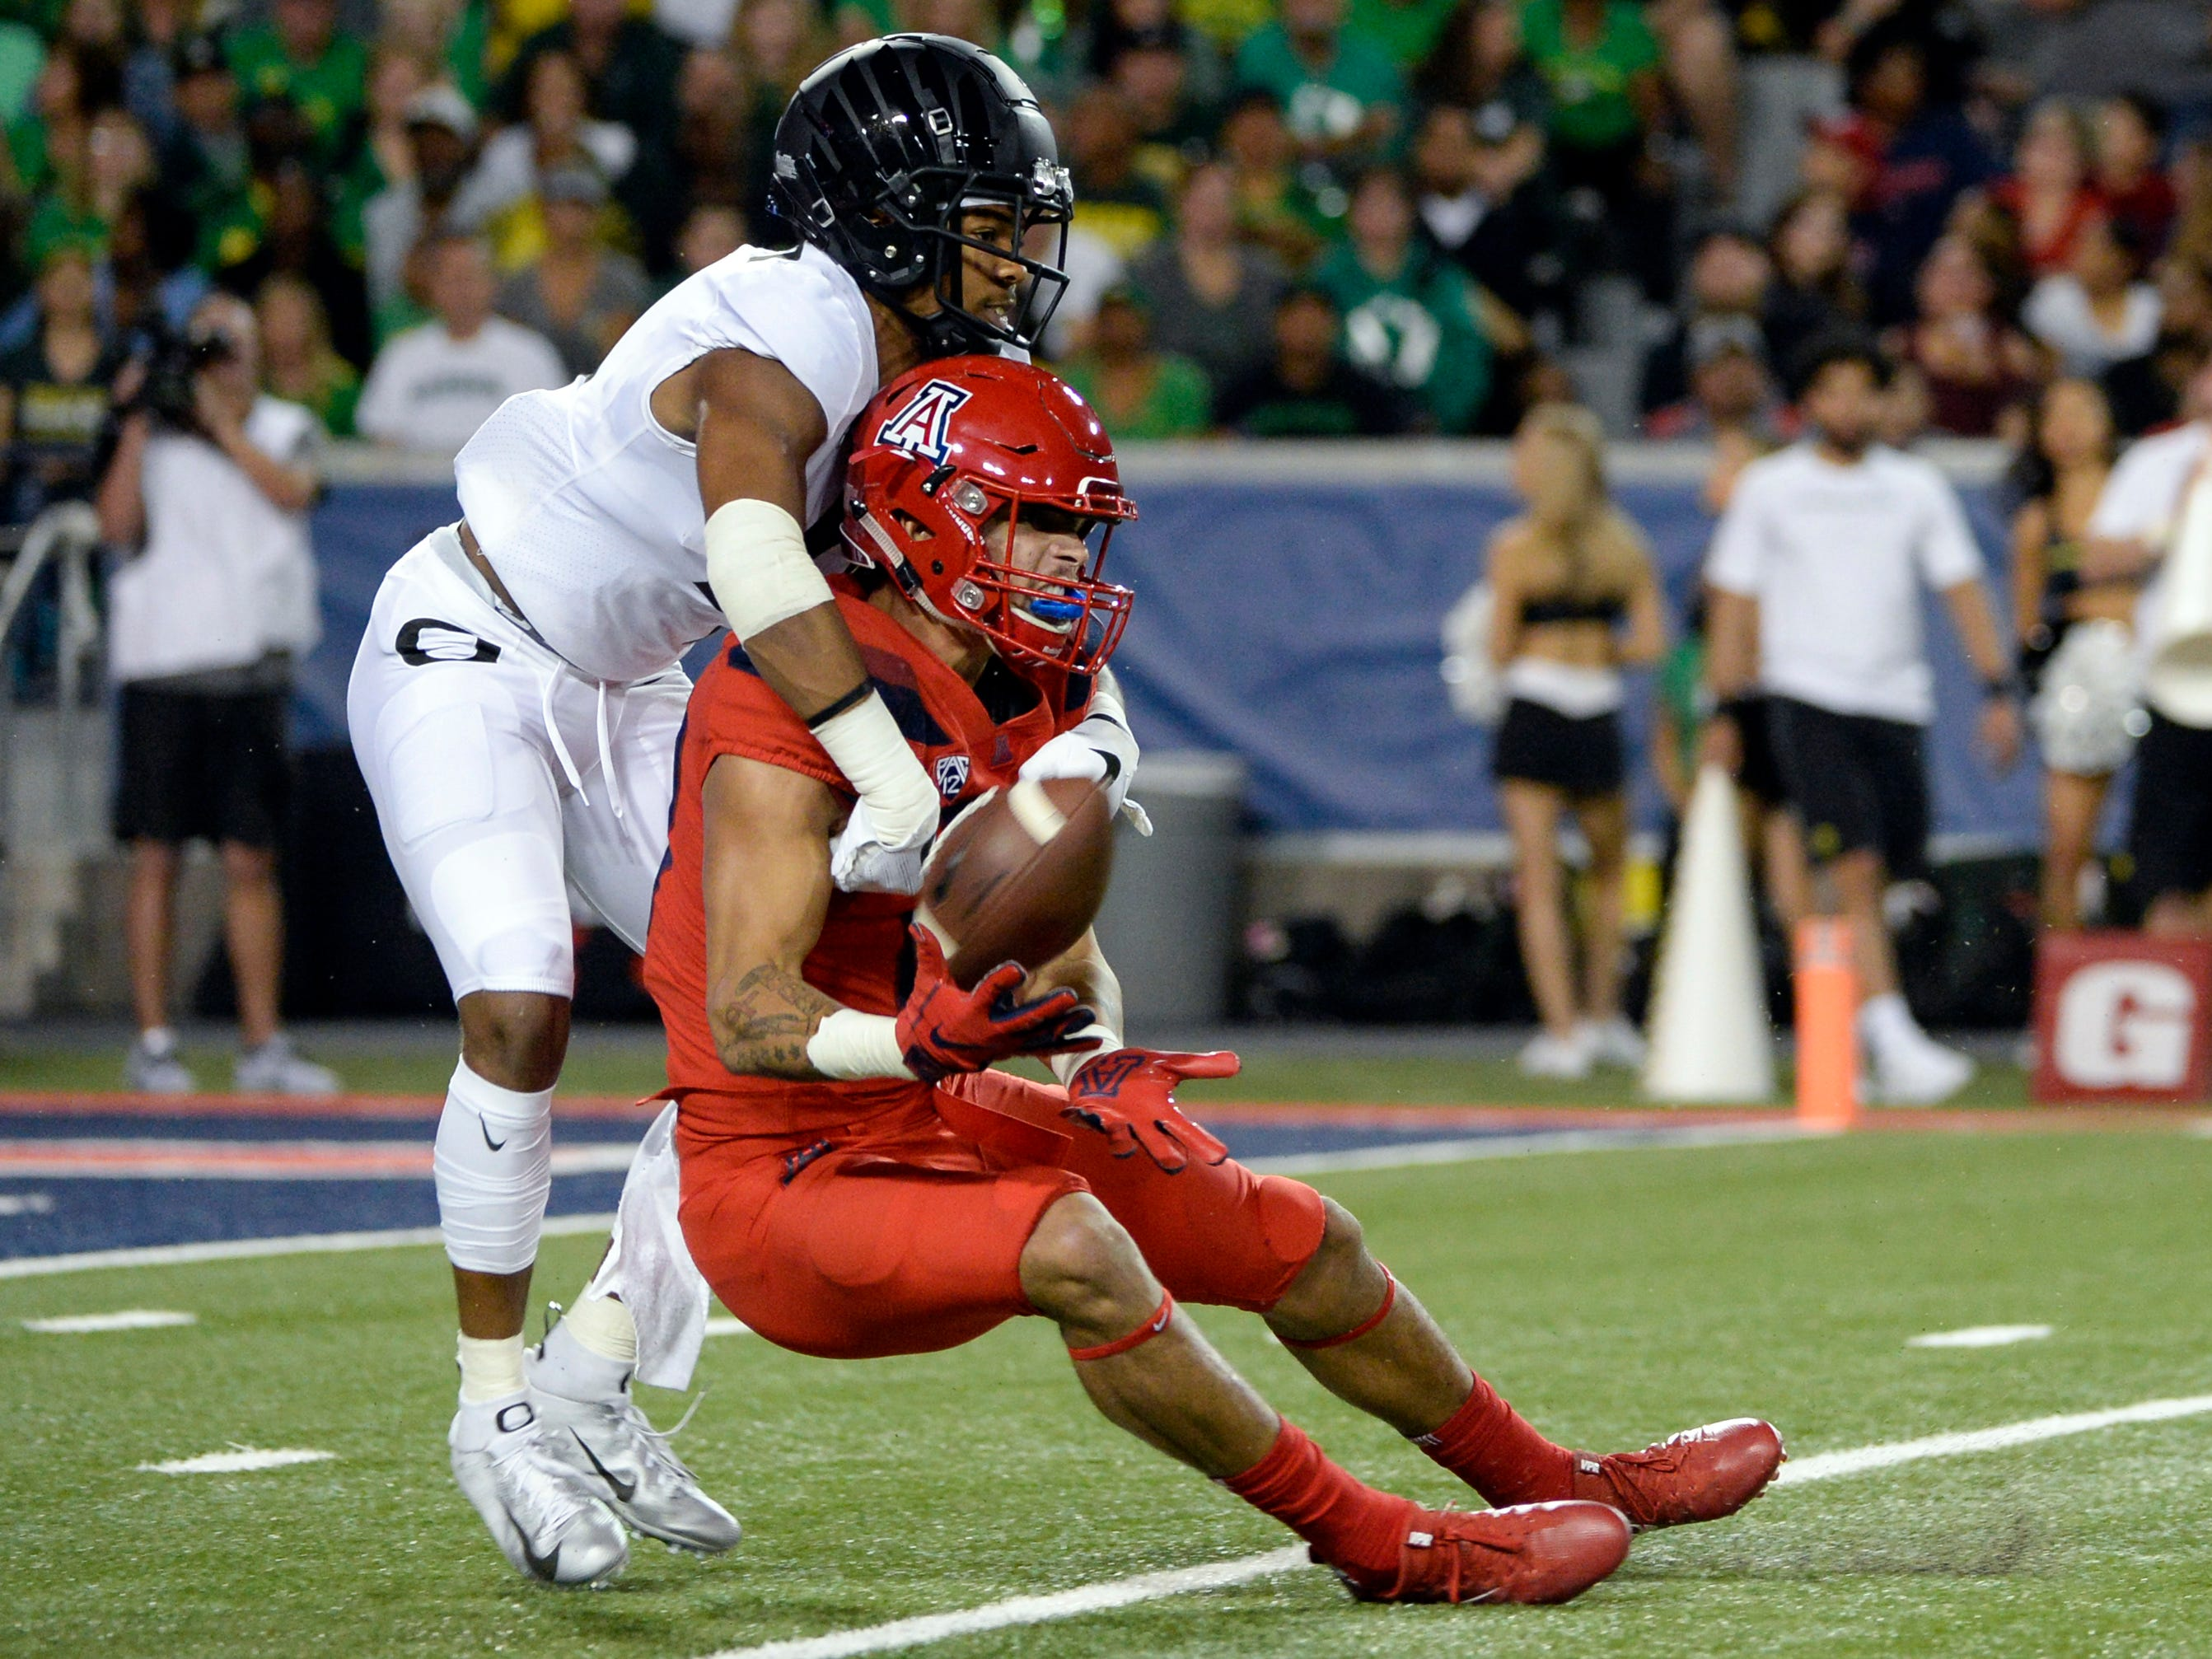 Oct 27, 2018; Tucson, AZ, USA; Oregon Ducks cornerback Thomas Graham Jr. (4) and Arizona Wildcats wide receiver Shawn Poindexter (19) battle for the ball during the first half at Arizona Stadium. Mandatory Credit: Casey Sapio-USA TODAY Sports